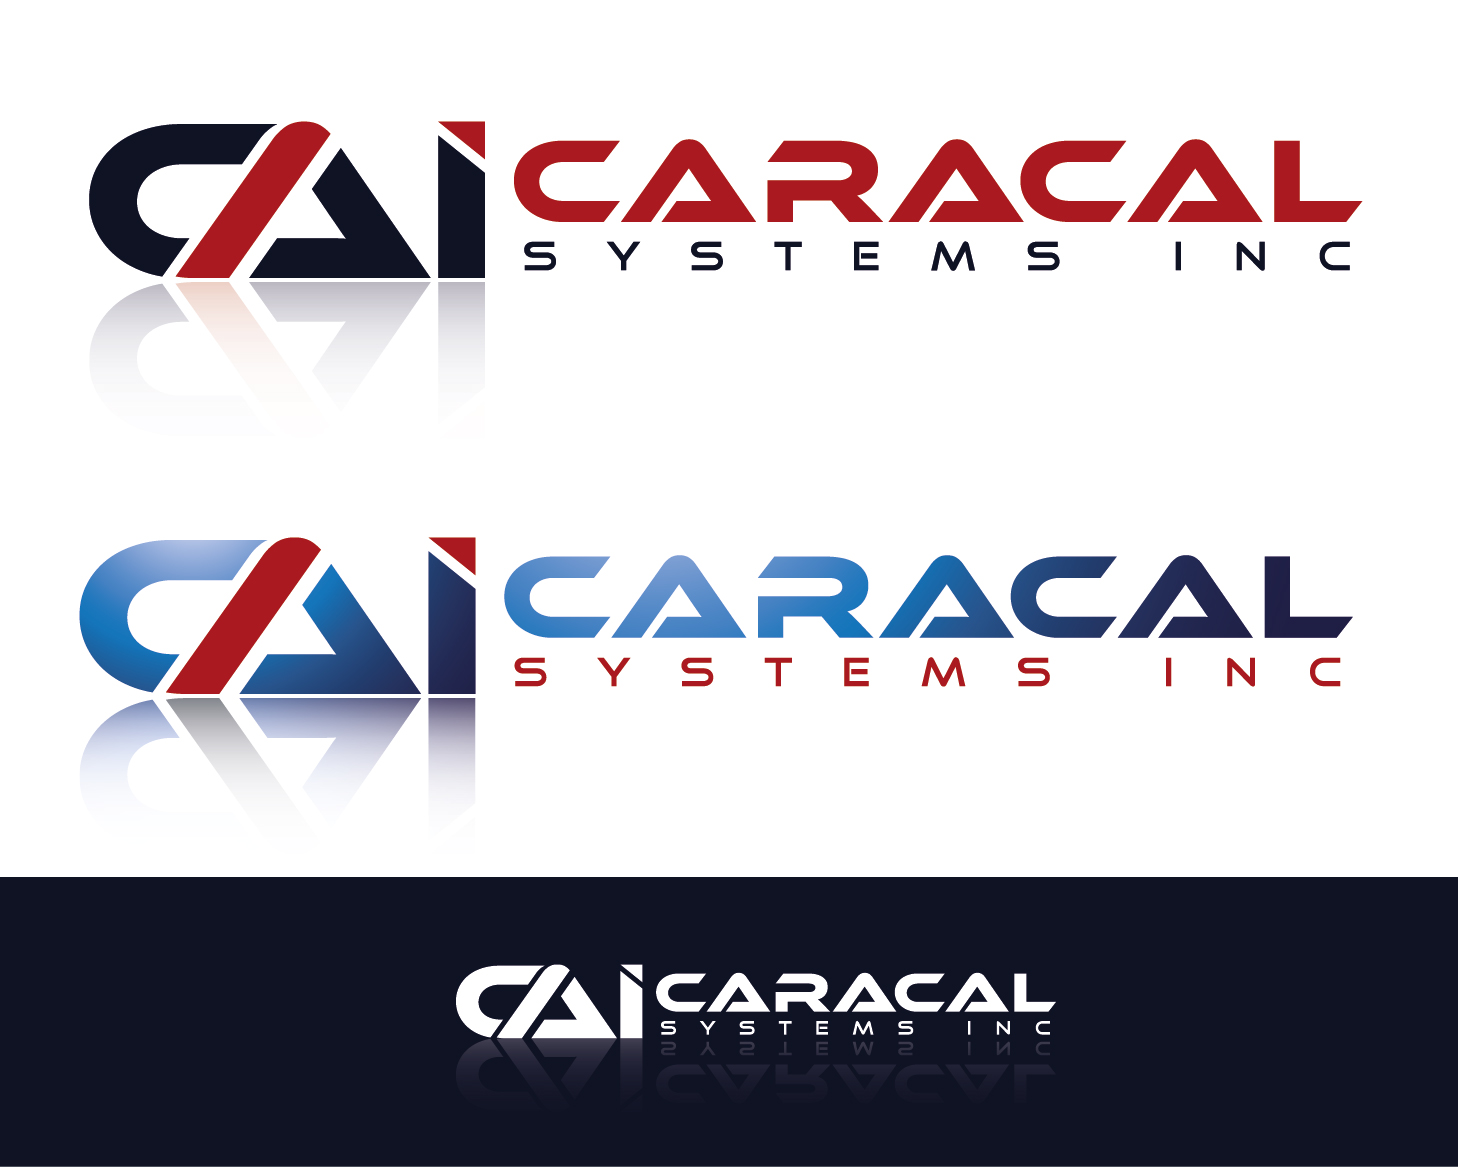 Logo Design by VENTSISLAV KOVACHEV - Entry No. 78 in the Logo Design Contest Inspiring Logo Design for Caracal Systems Inc..